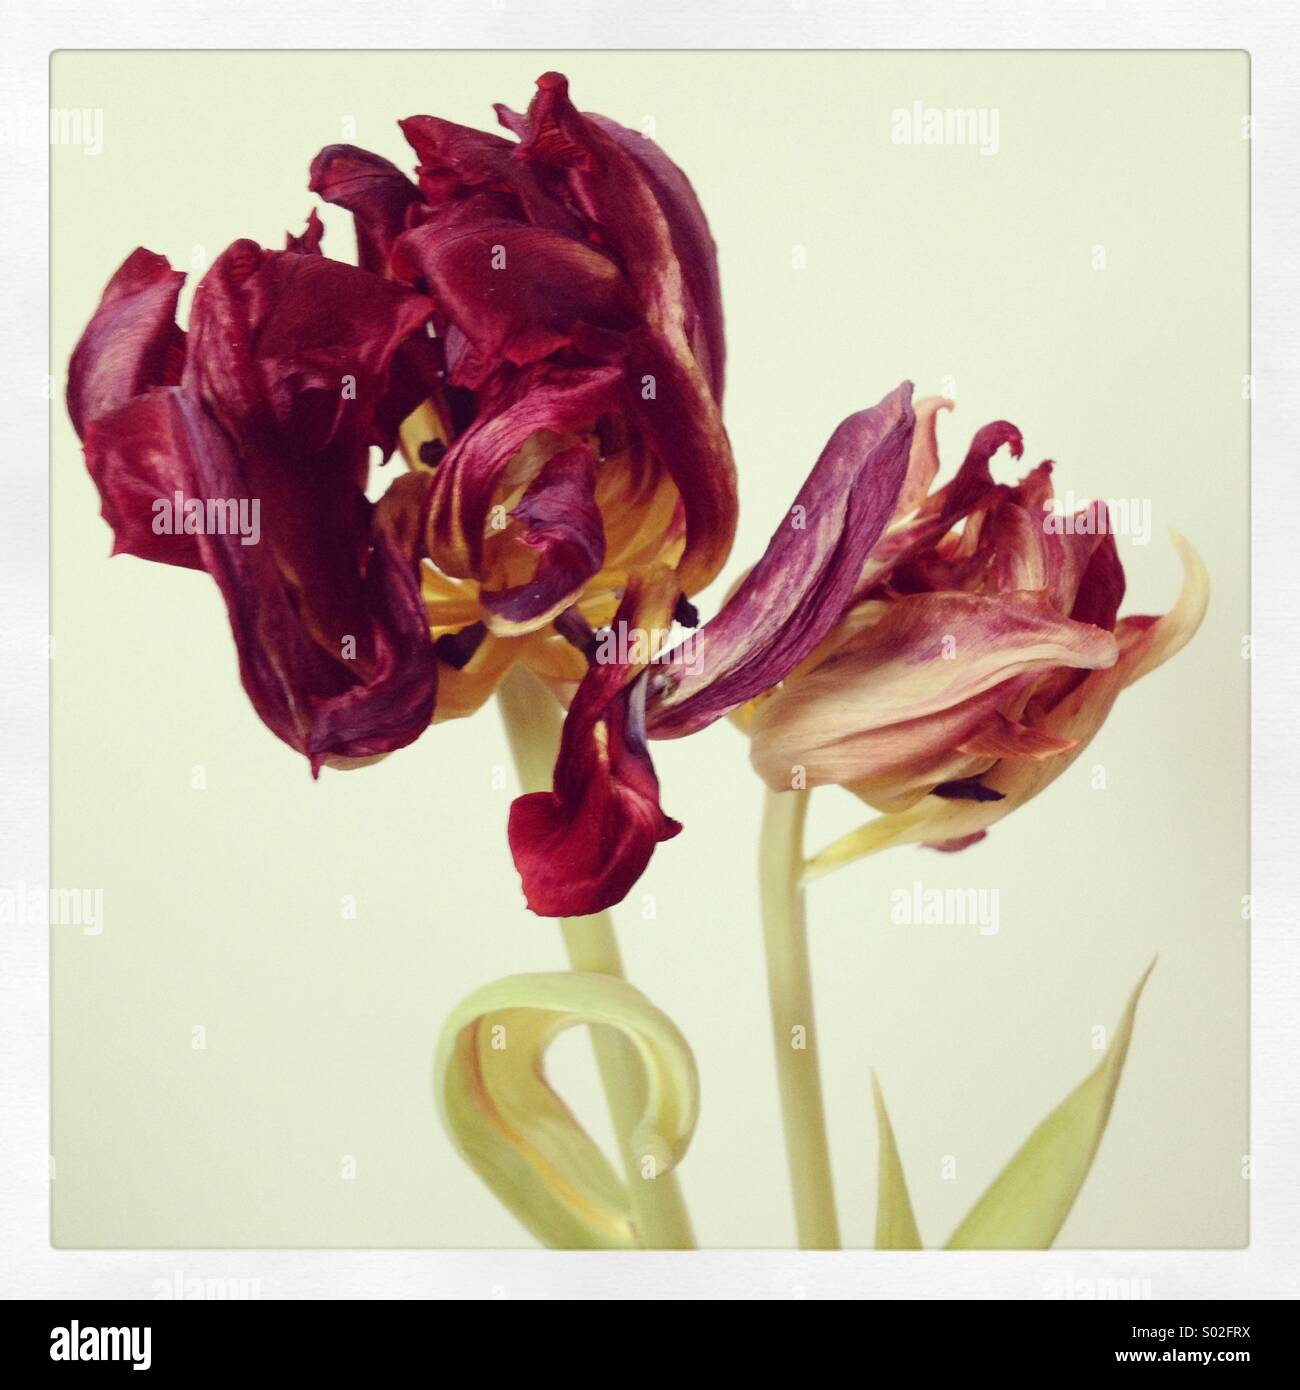 Decaying tulip - Stock Image